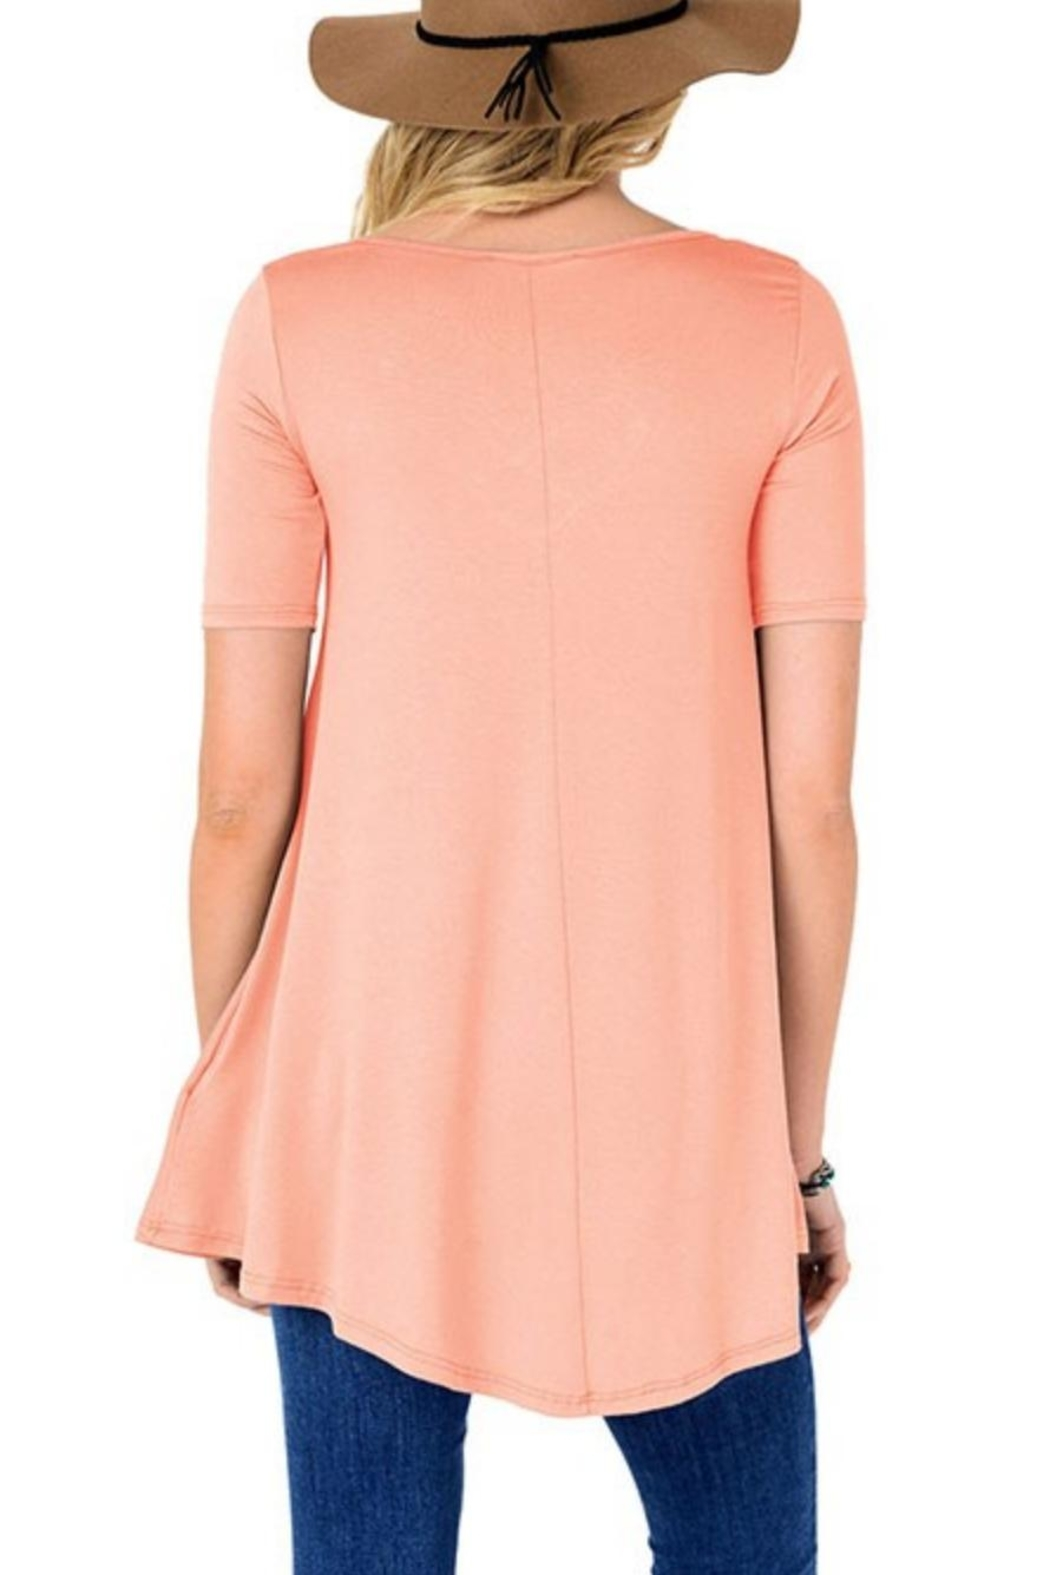 Fashion Corner Criss Cross Scoop Top - Front Full Image